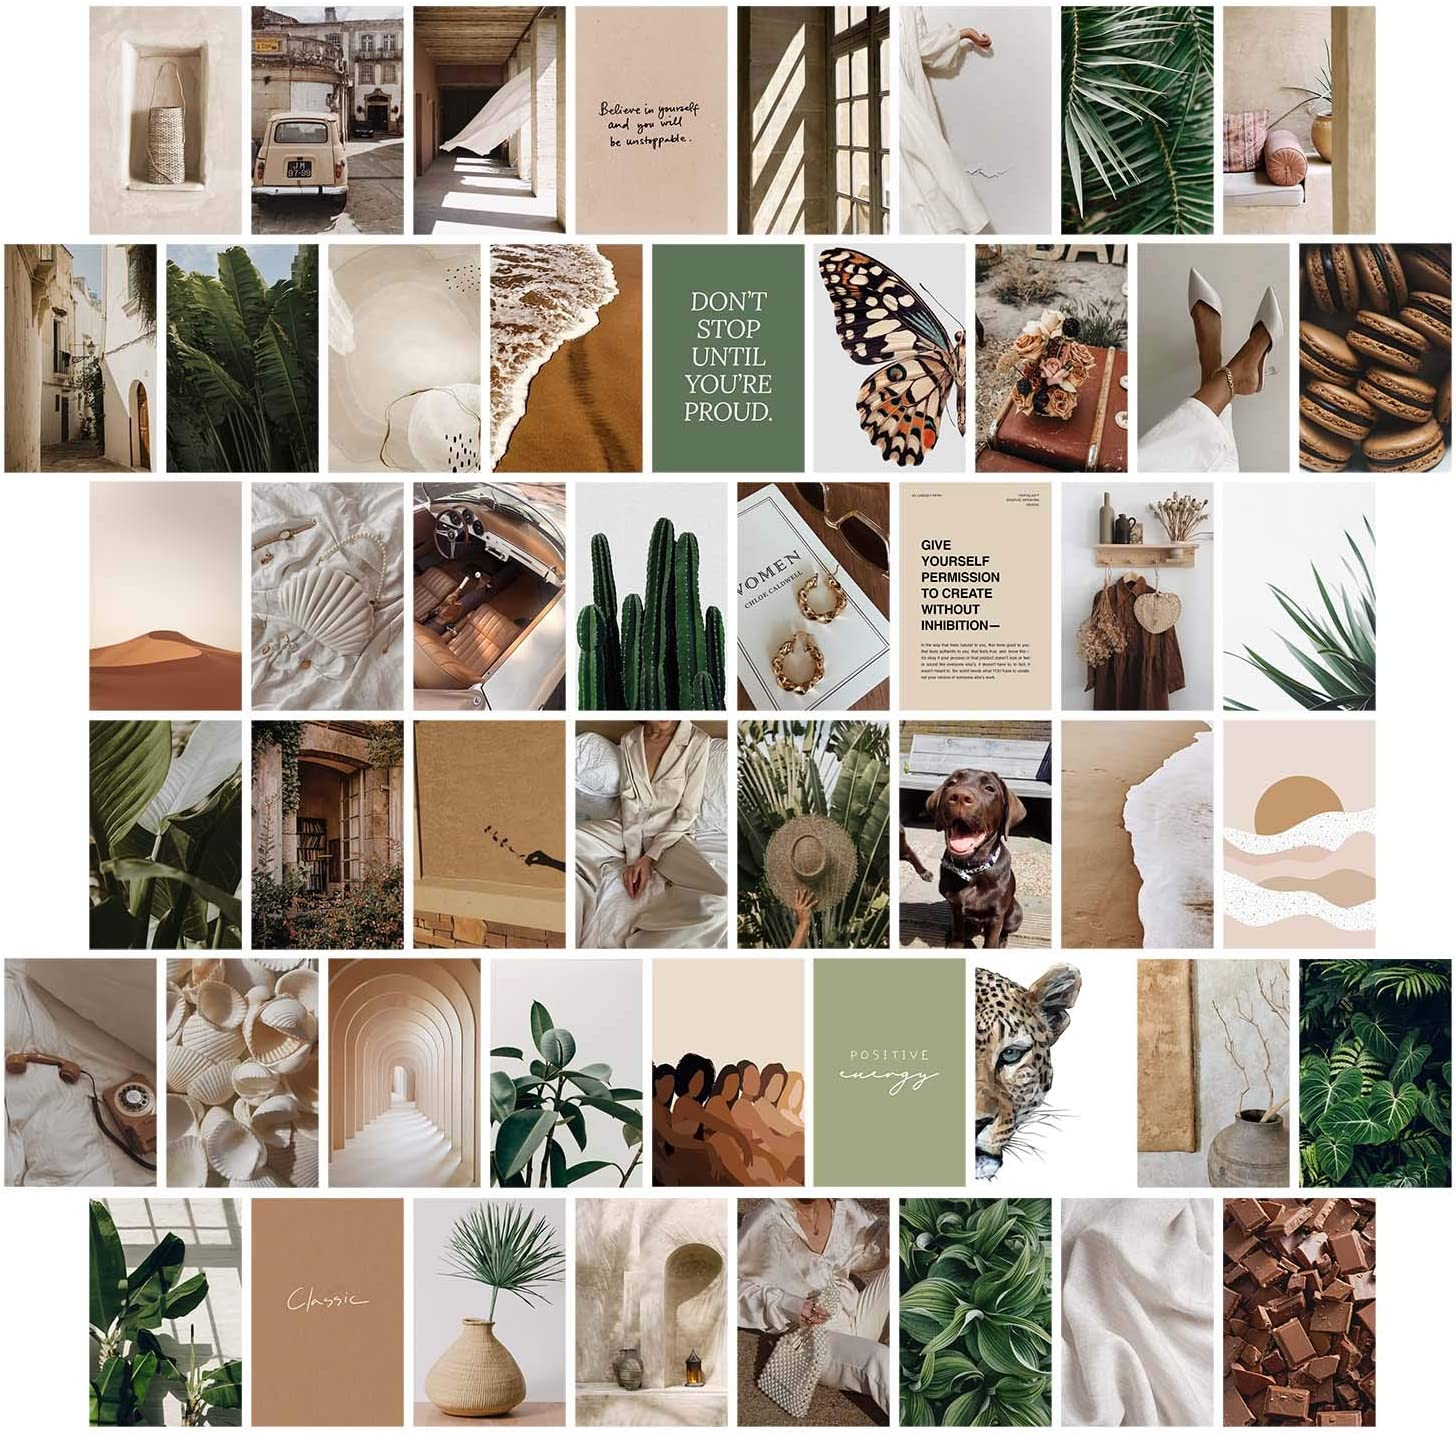 Haoran 50PCS Boho Wall Collage Kit Aesthetic Pictures, Photo Pictures Collage Kit for Wall Aesthetic, Cottagecore Indie Haus and Hues VSCO Posters Room Decor for Teen Girls Bedroom Aesthetic,4x6 Inch